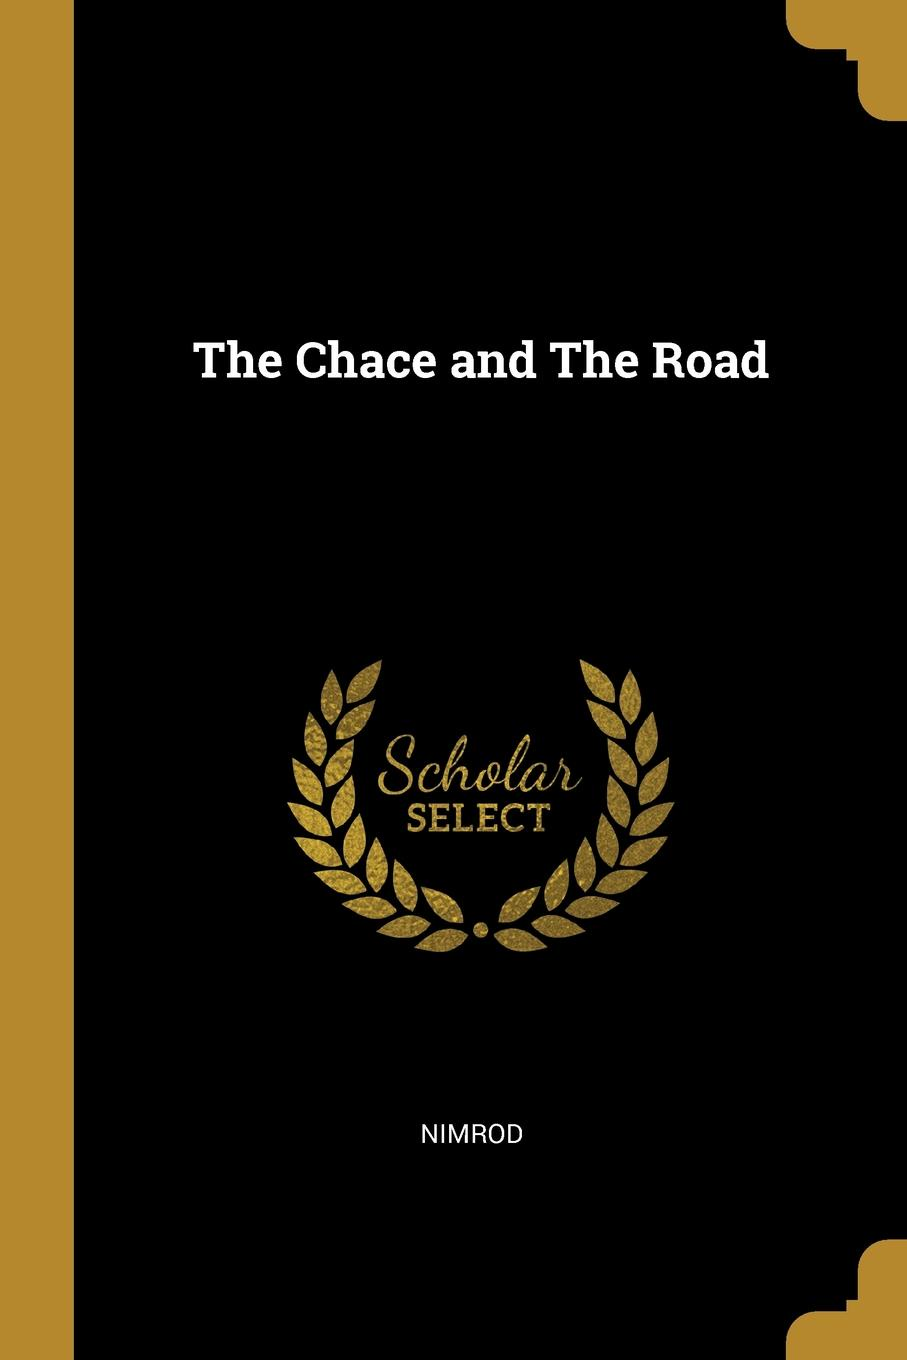 Nimrod. The Chace and The Road